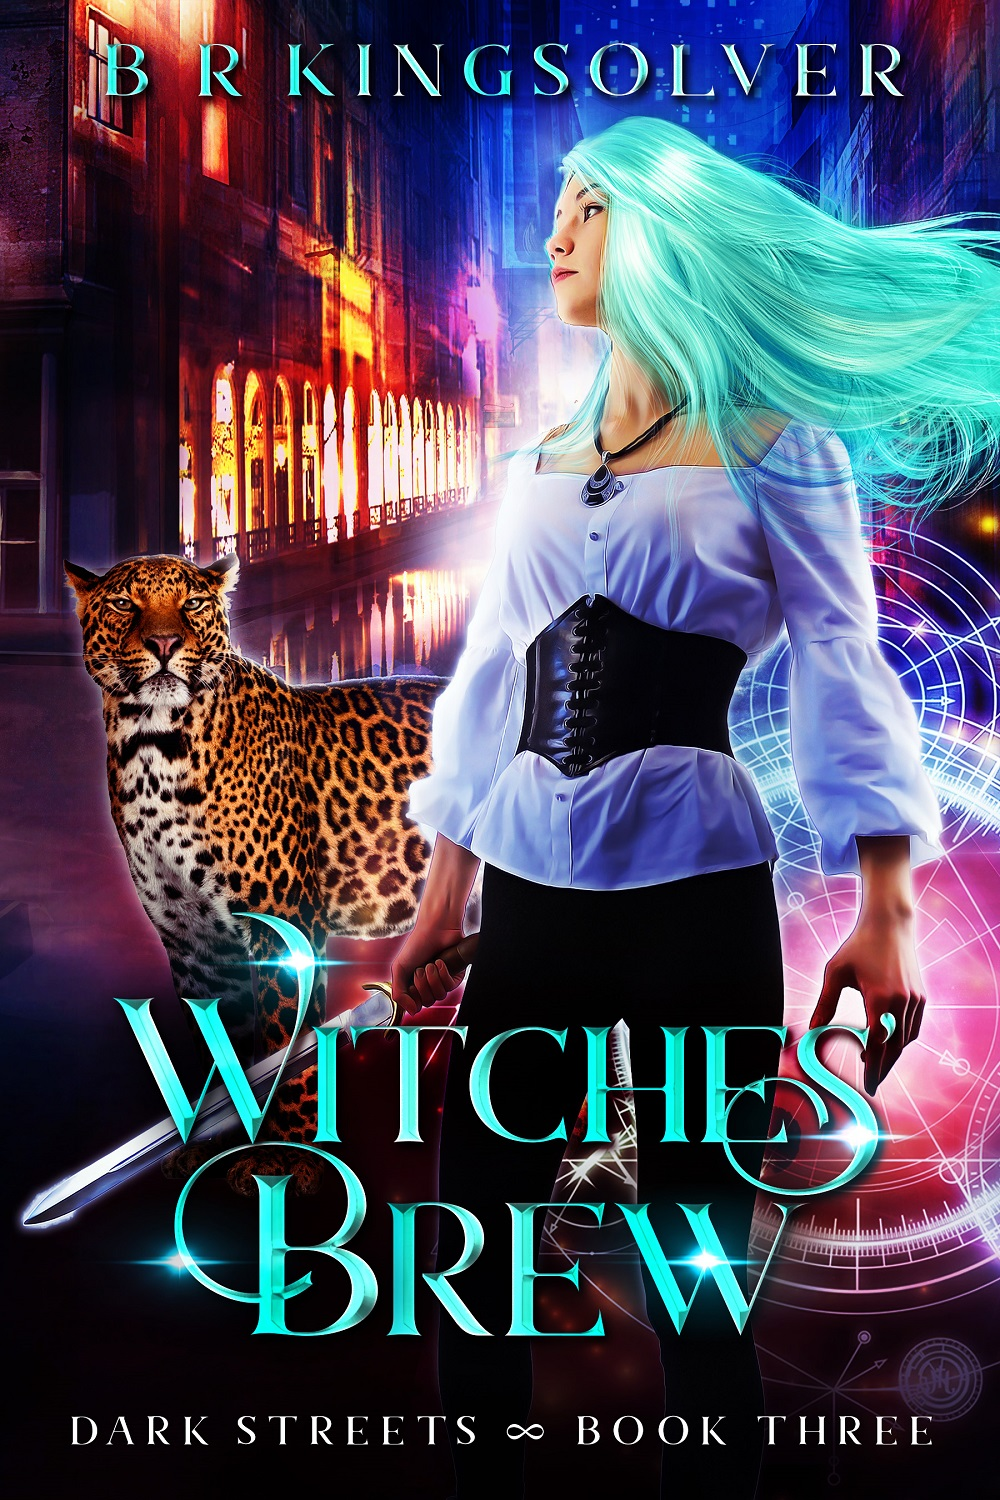 BR Kingsolver Witches' Brew